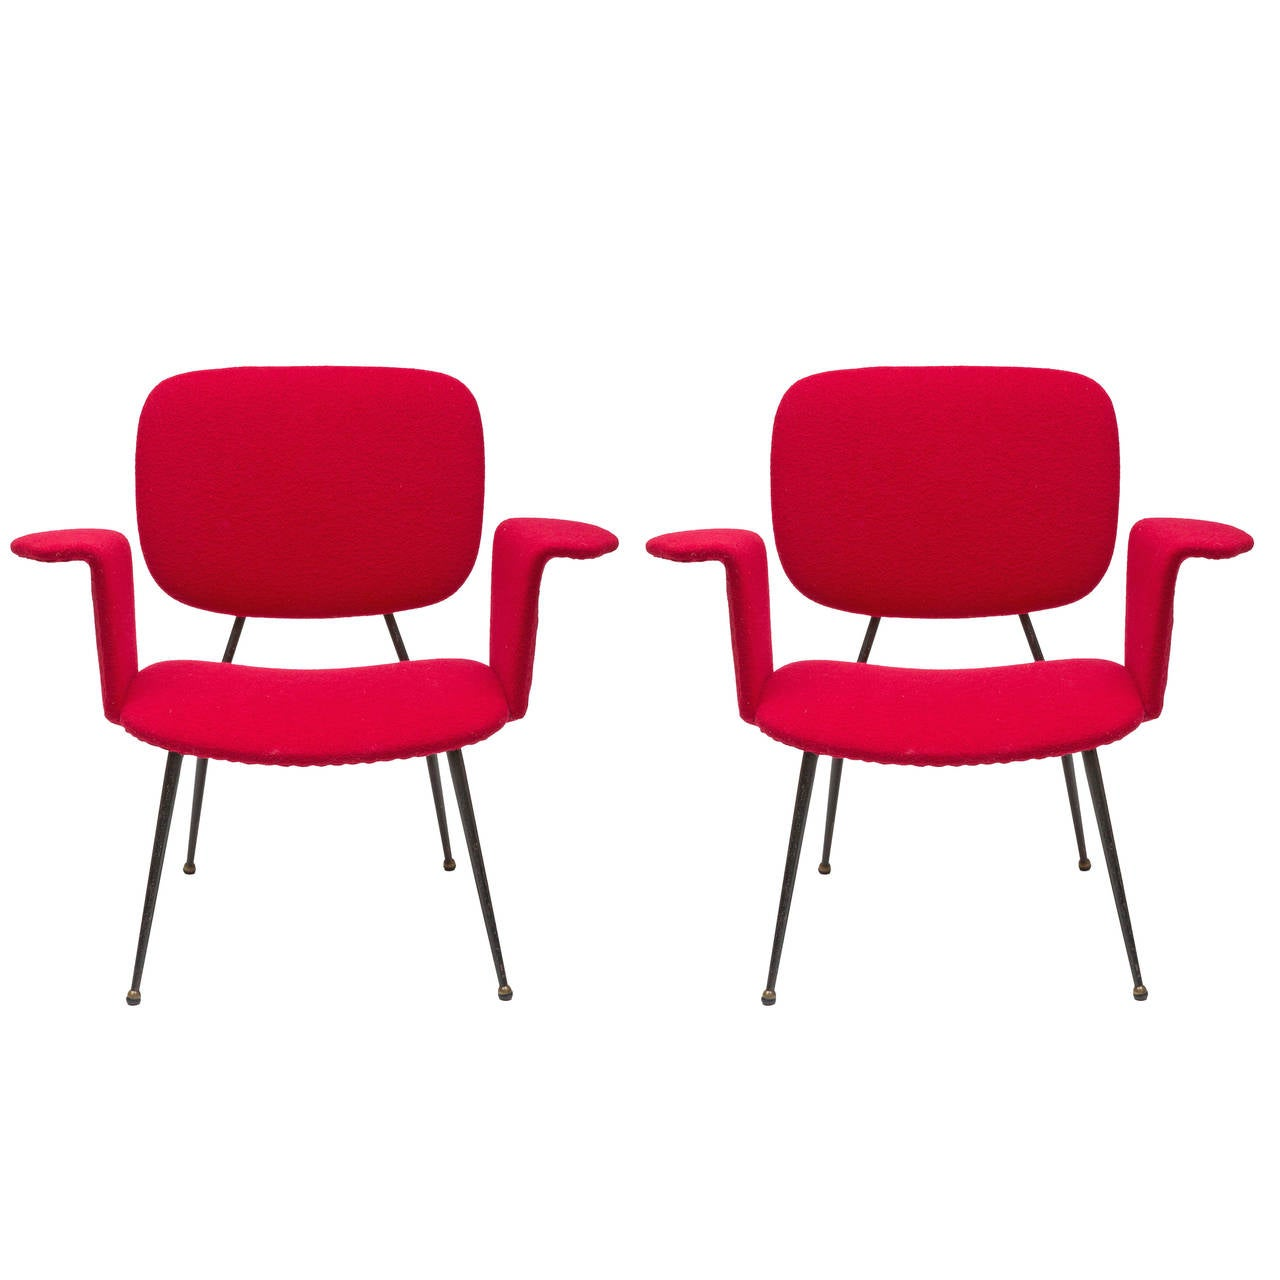 Mid-Century Modern Aile Chairs